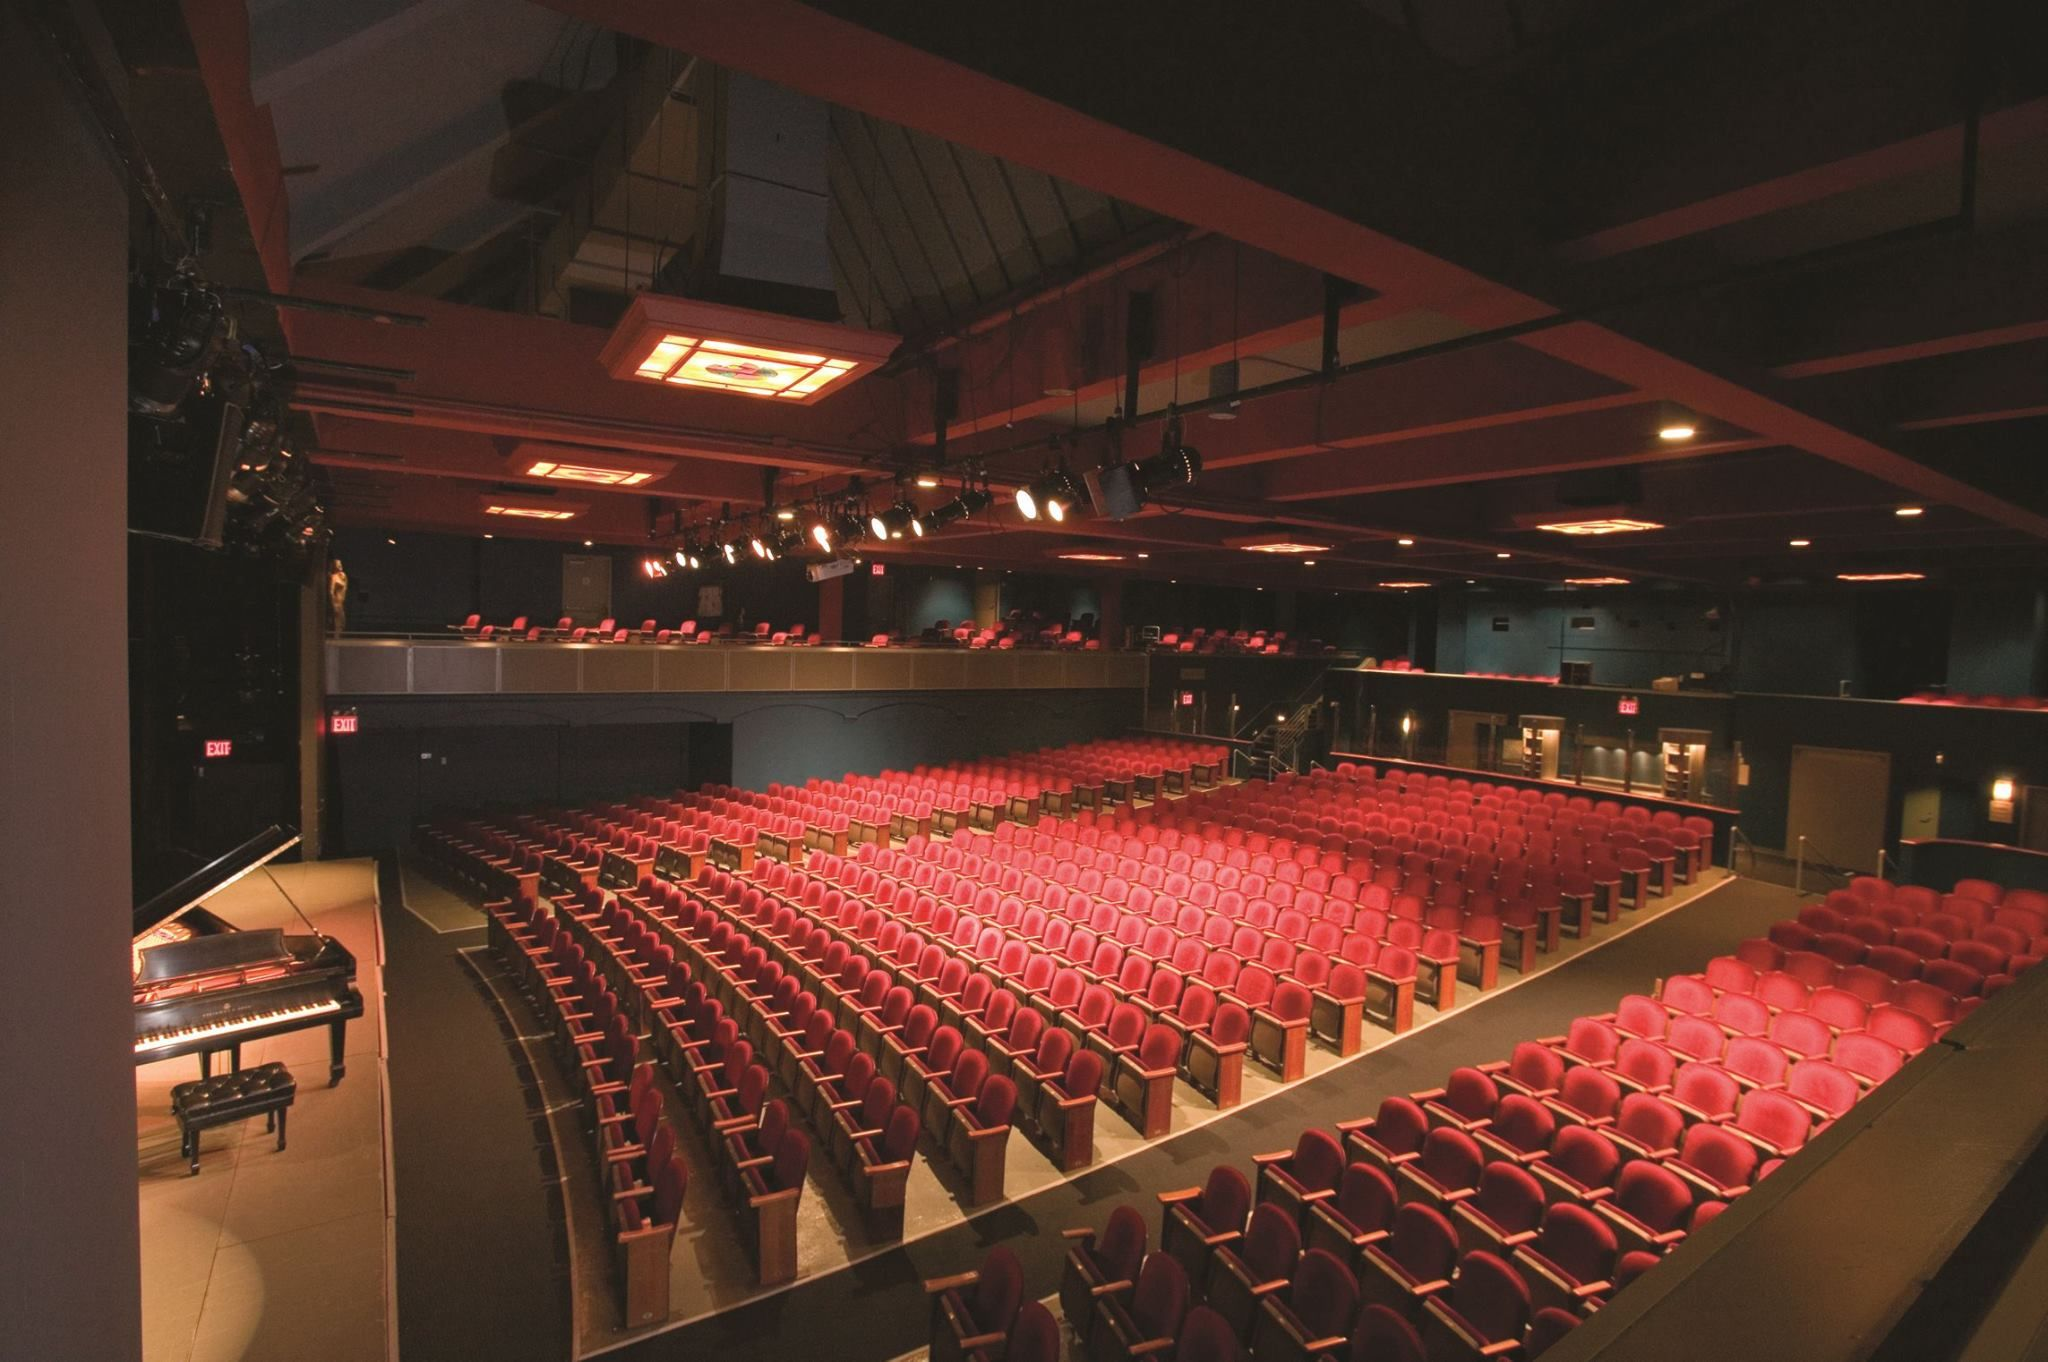 756seat Peter Jay Sharp Theatre with proscenium stage and